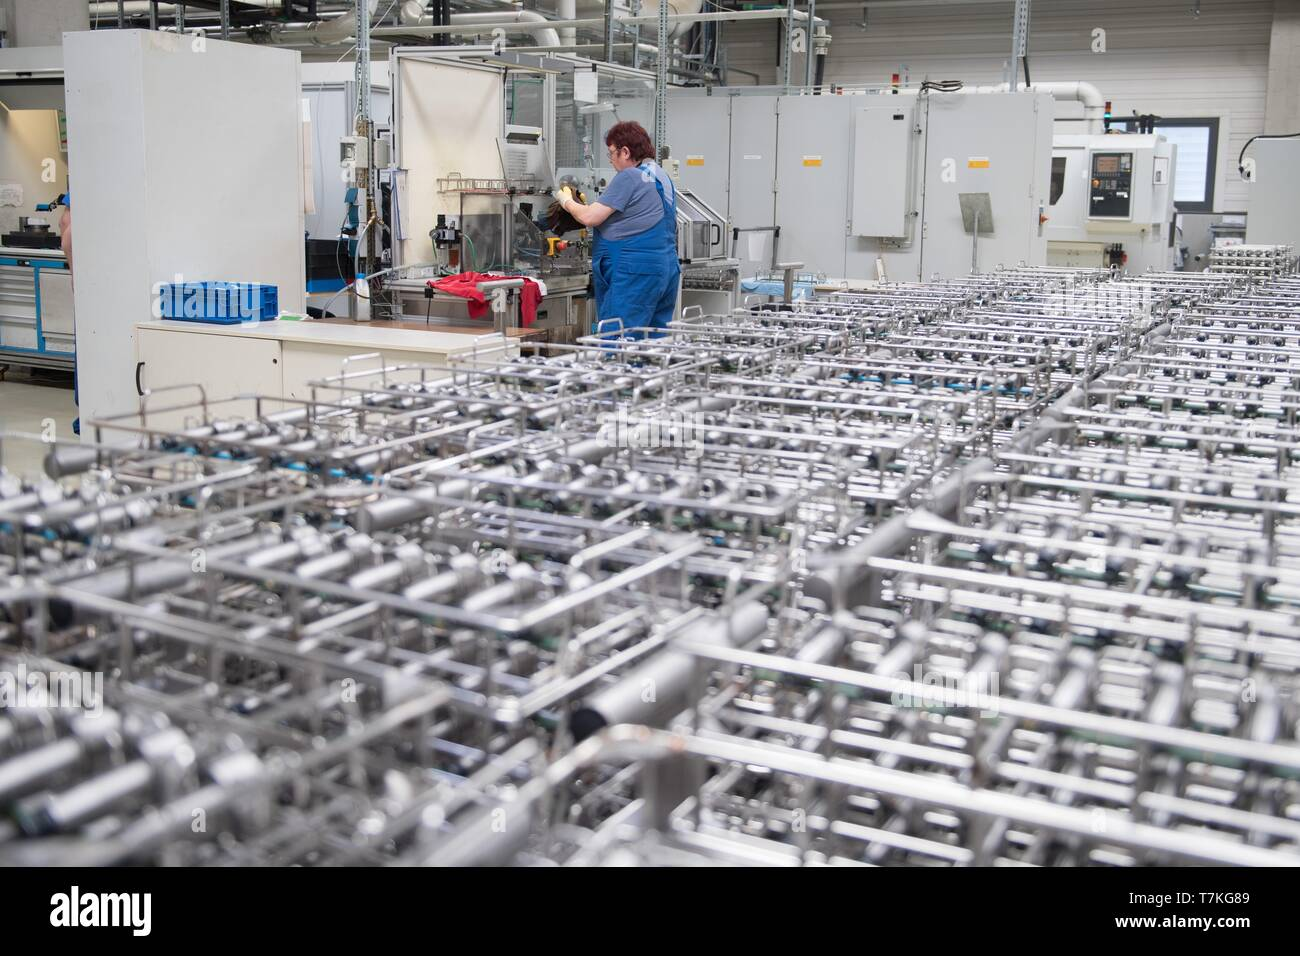 Camshafts Stock Photos & Camshafts Stock Images - Alamy